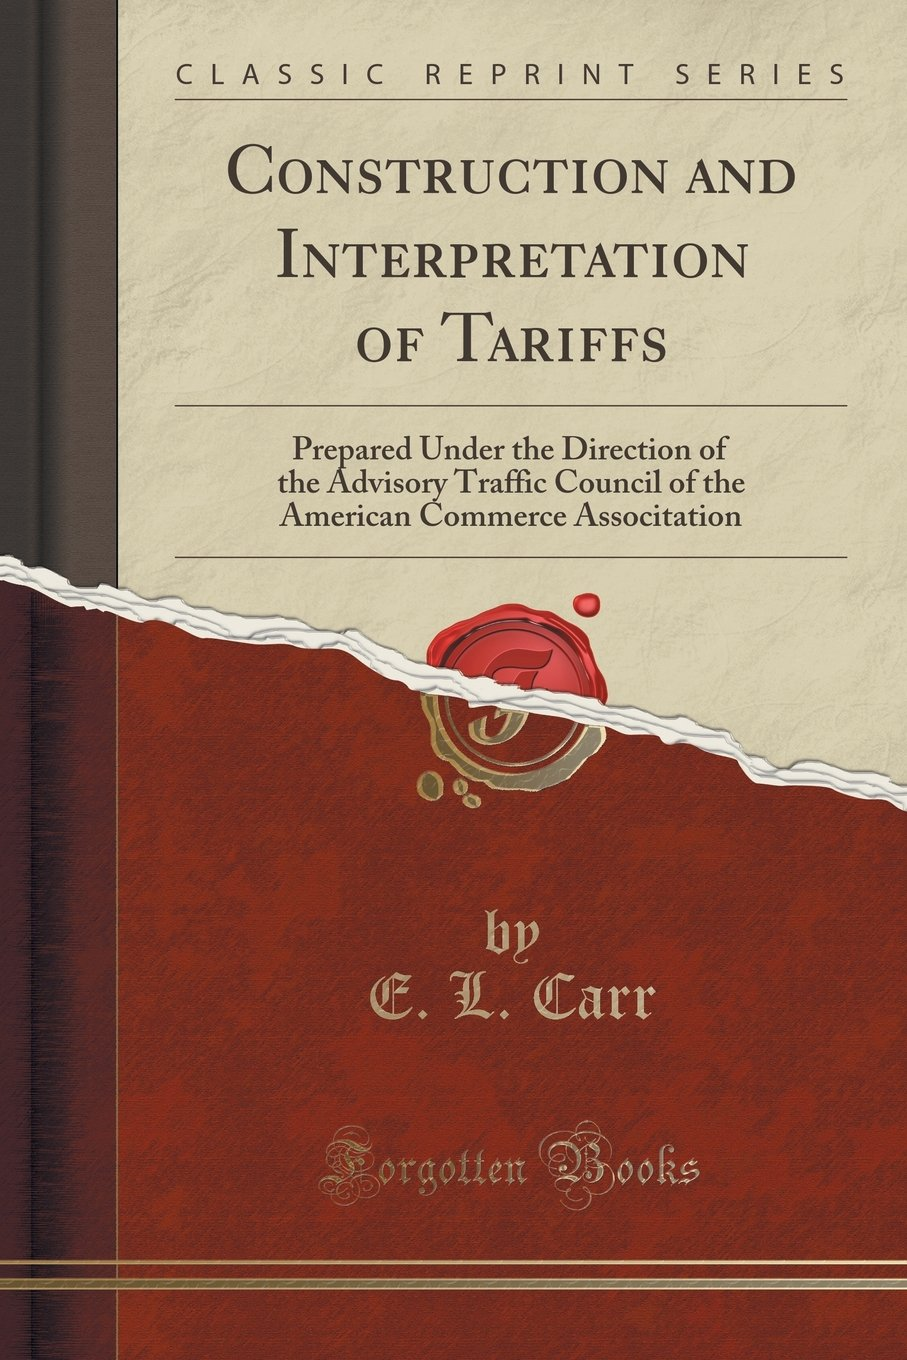 Construction and Interpretation of Tariffs: Prepared Under the Direction of the Advisory Traffic Council of the American Commerce Associtation (Classic Reprint) ebook